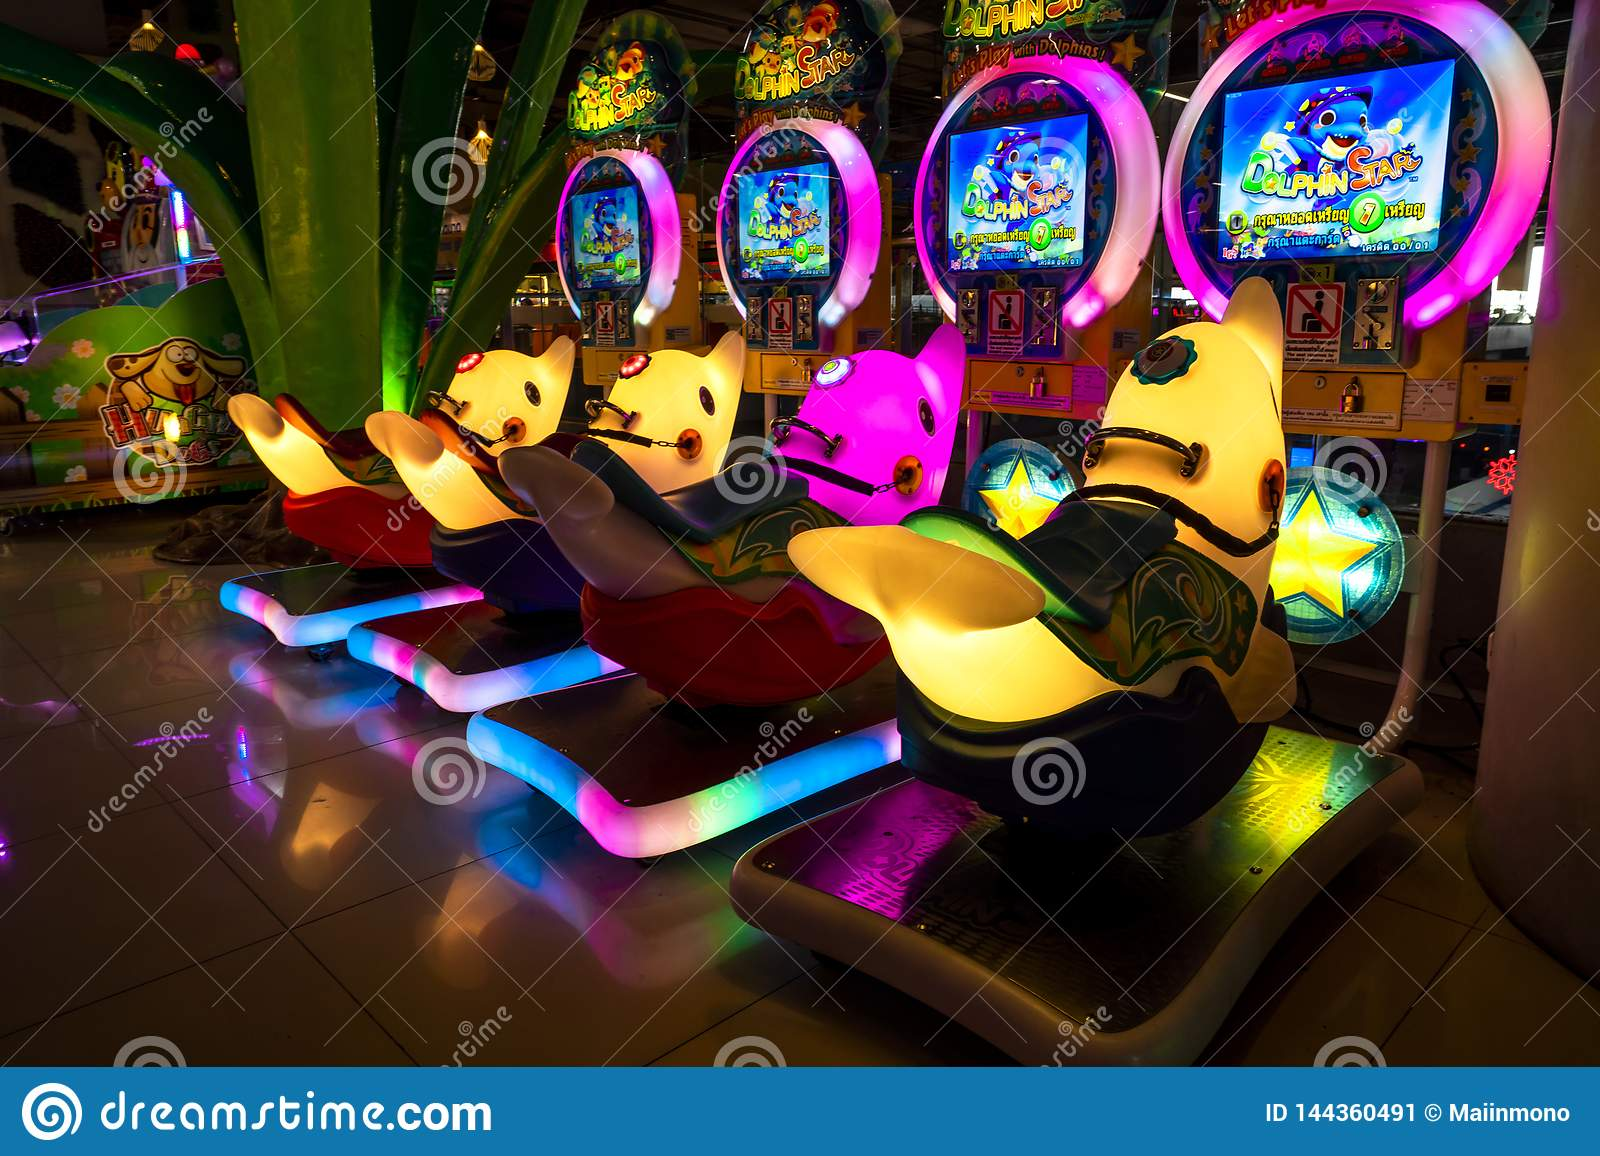 Chiang Mai / Thailand - March 12, 2019 : Colorful coin-operated game cabinet with neon light at Central Festival Department Store.